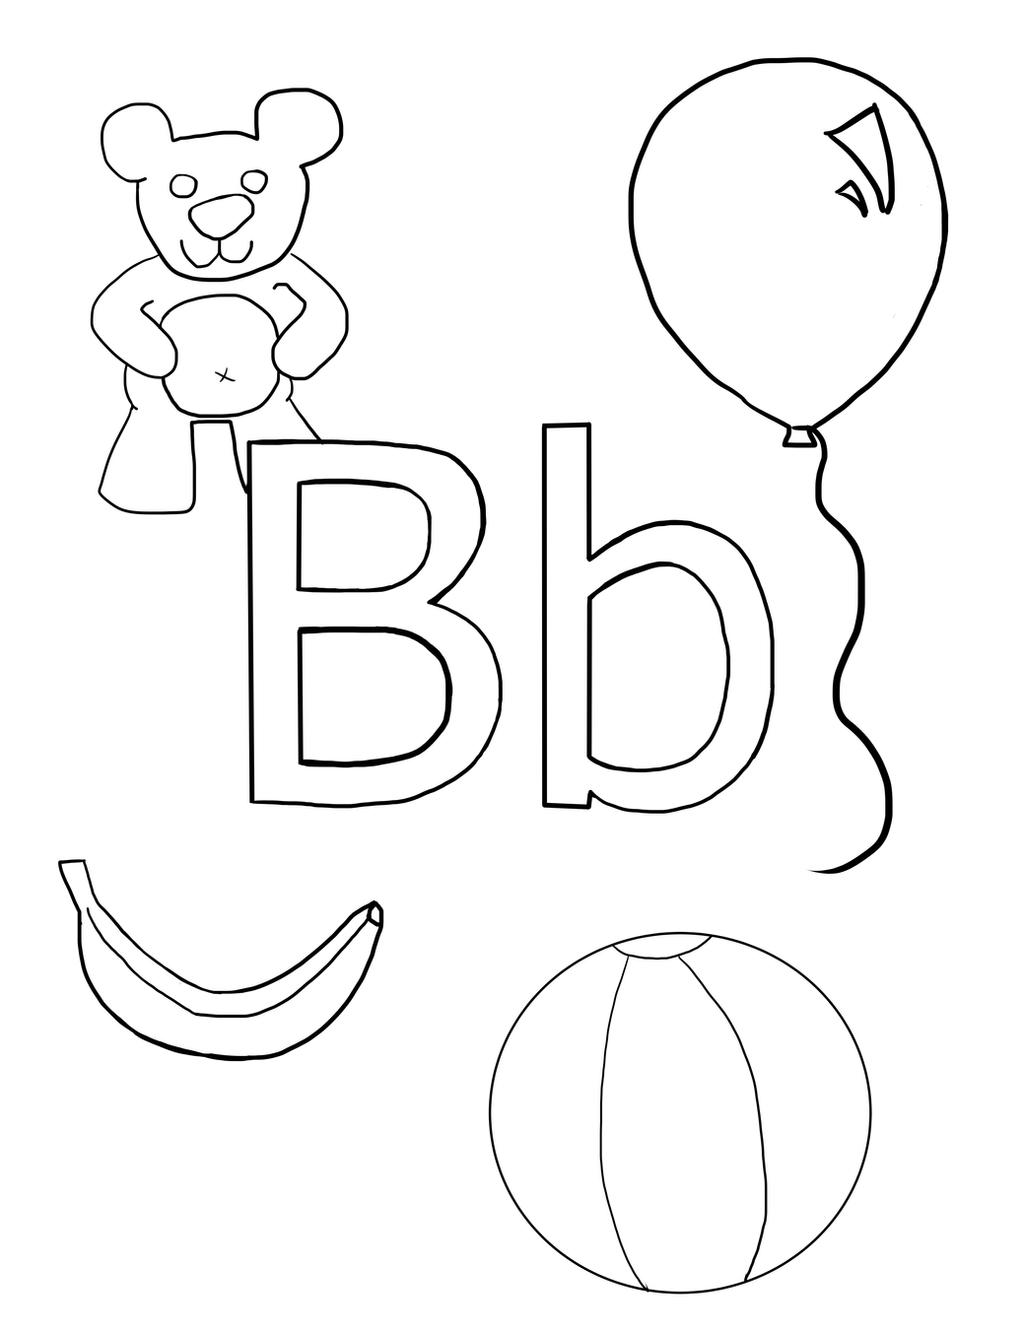 letter b coloring page - letter b coloring sheet by audiobot11 on deviantart